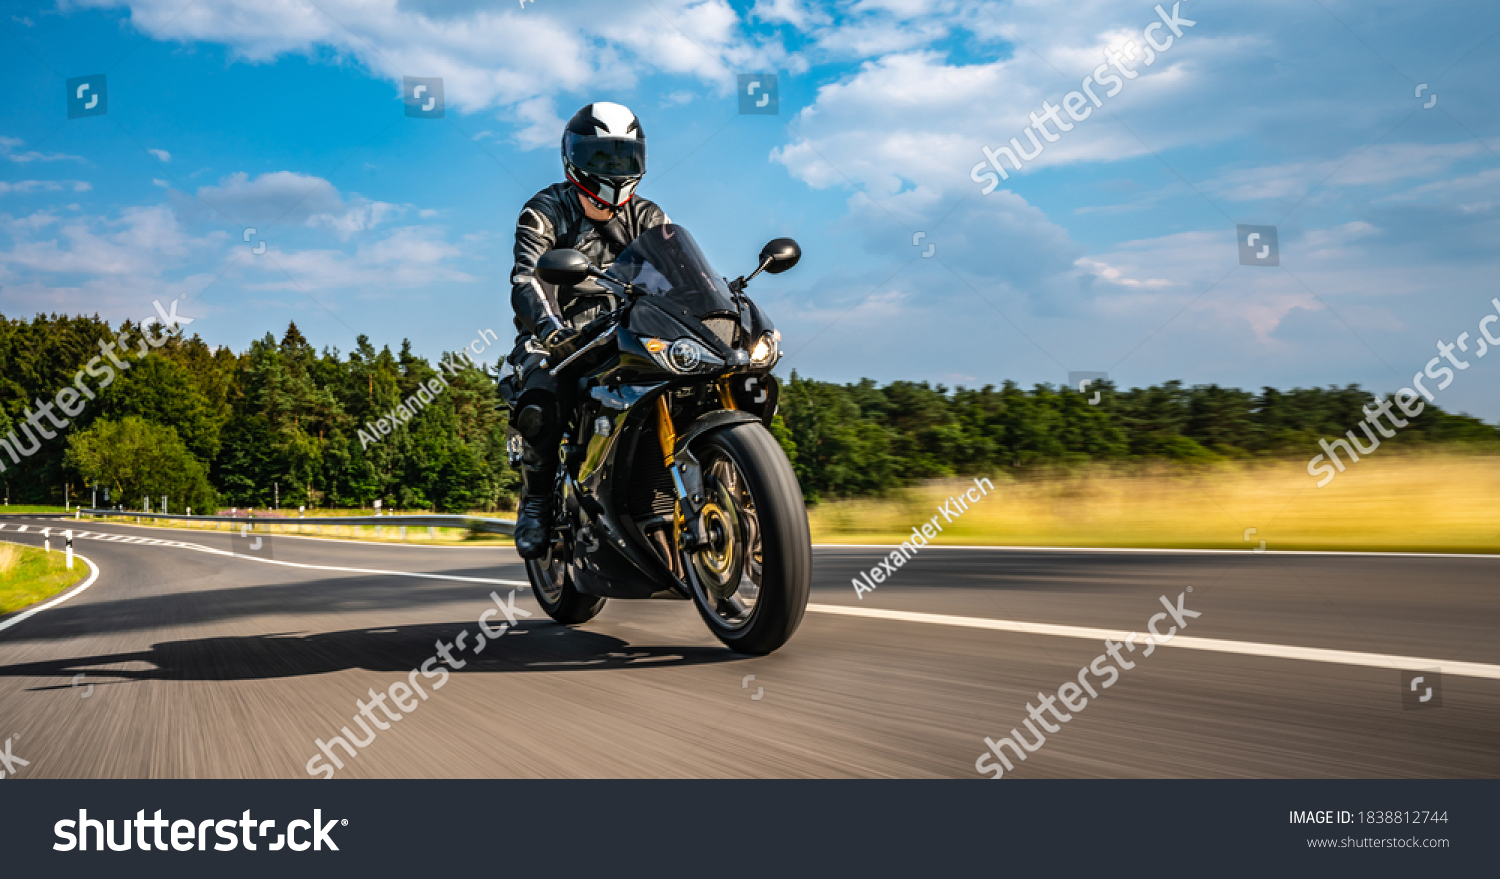 motorbike on the road riding. having fun driving the empty road on a motorcycle tour journey. copyspace for your individual text. Fast Motion Blur effect #1838812744